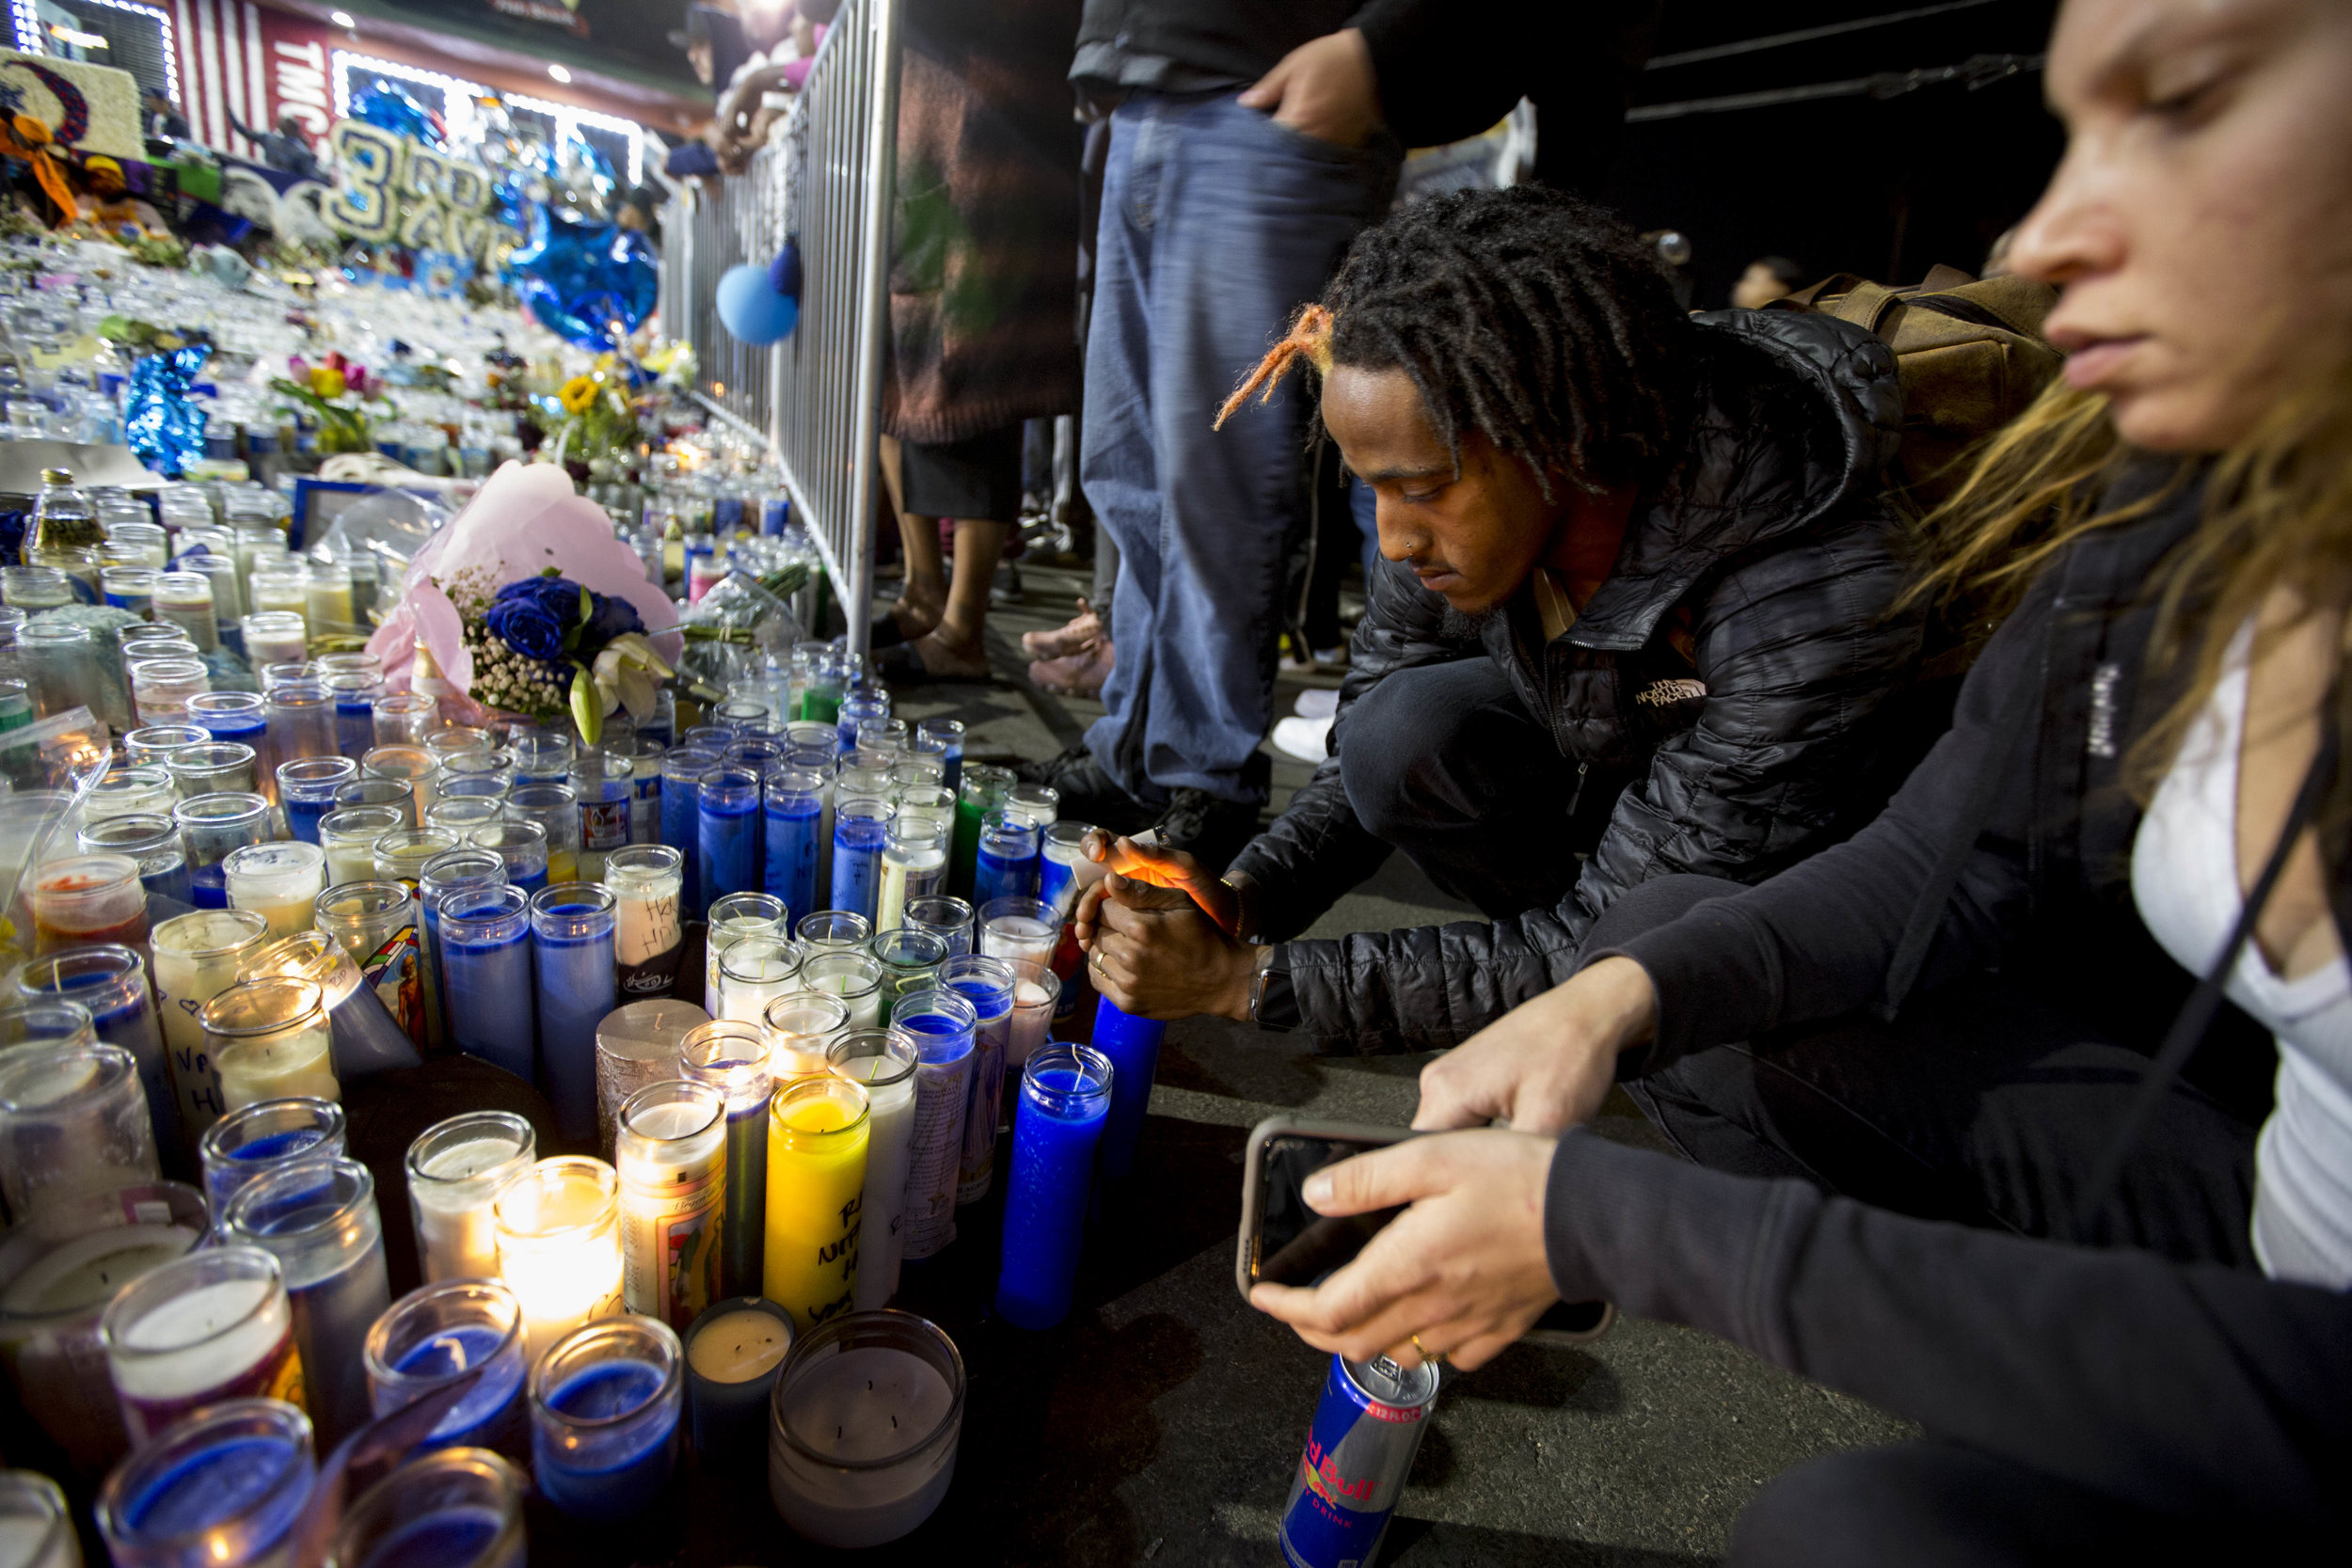 People light candles as they gather to commemorate the life of Nipsey Hussle at the makeshift memorial near The Marathon Clothing store on Slauson Avenue in Los Angeles, California on Wednesday, April 6, 2019. The 33-year-old rapper was murdered on March 31 in front of The Marathon Clothing store which he owned. (Jose Lopez)